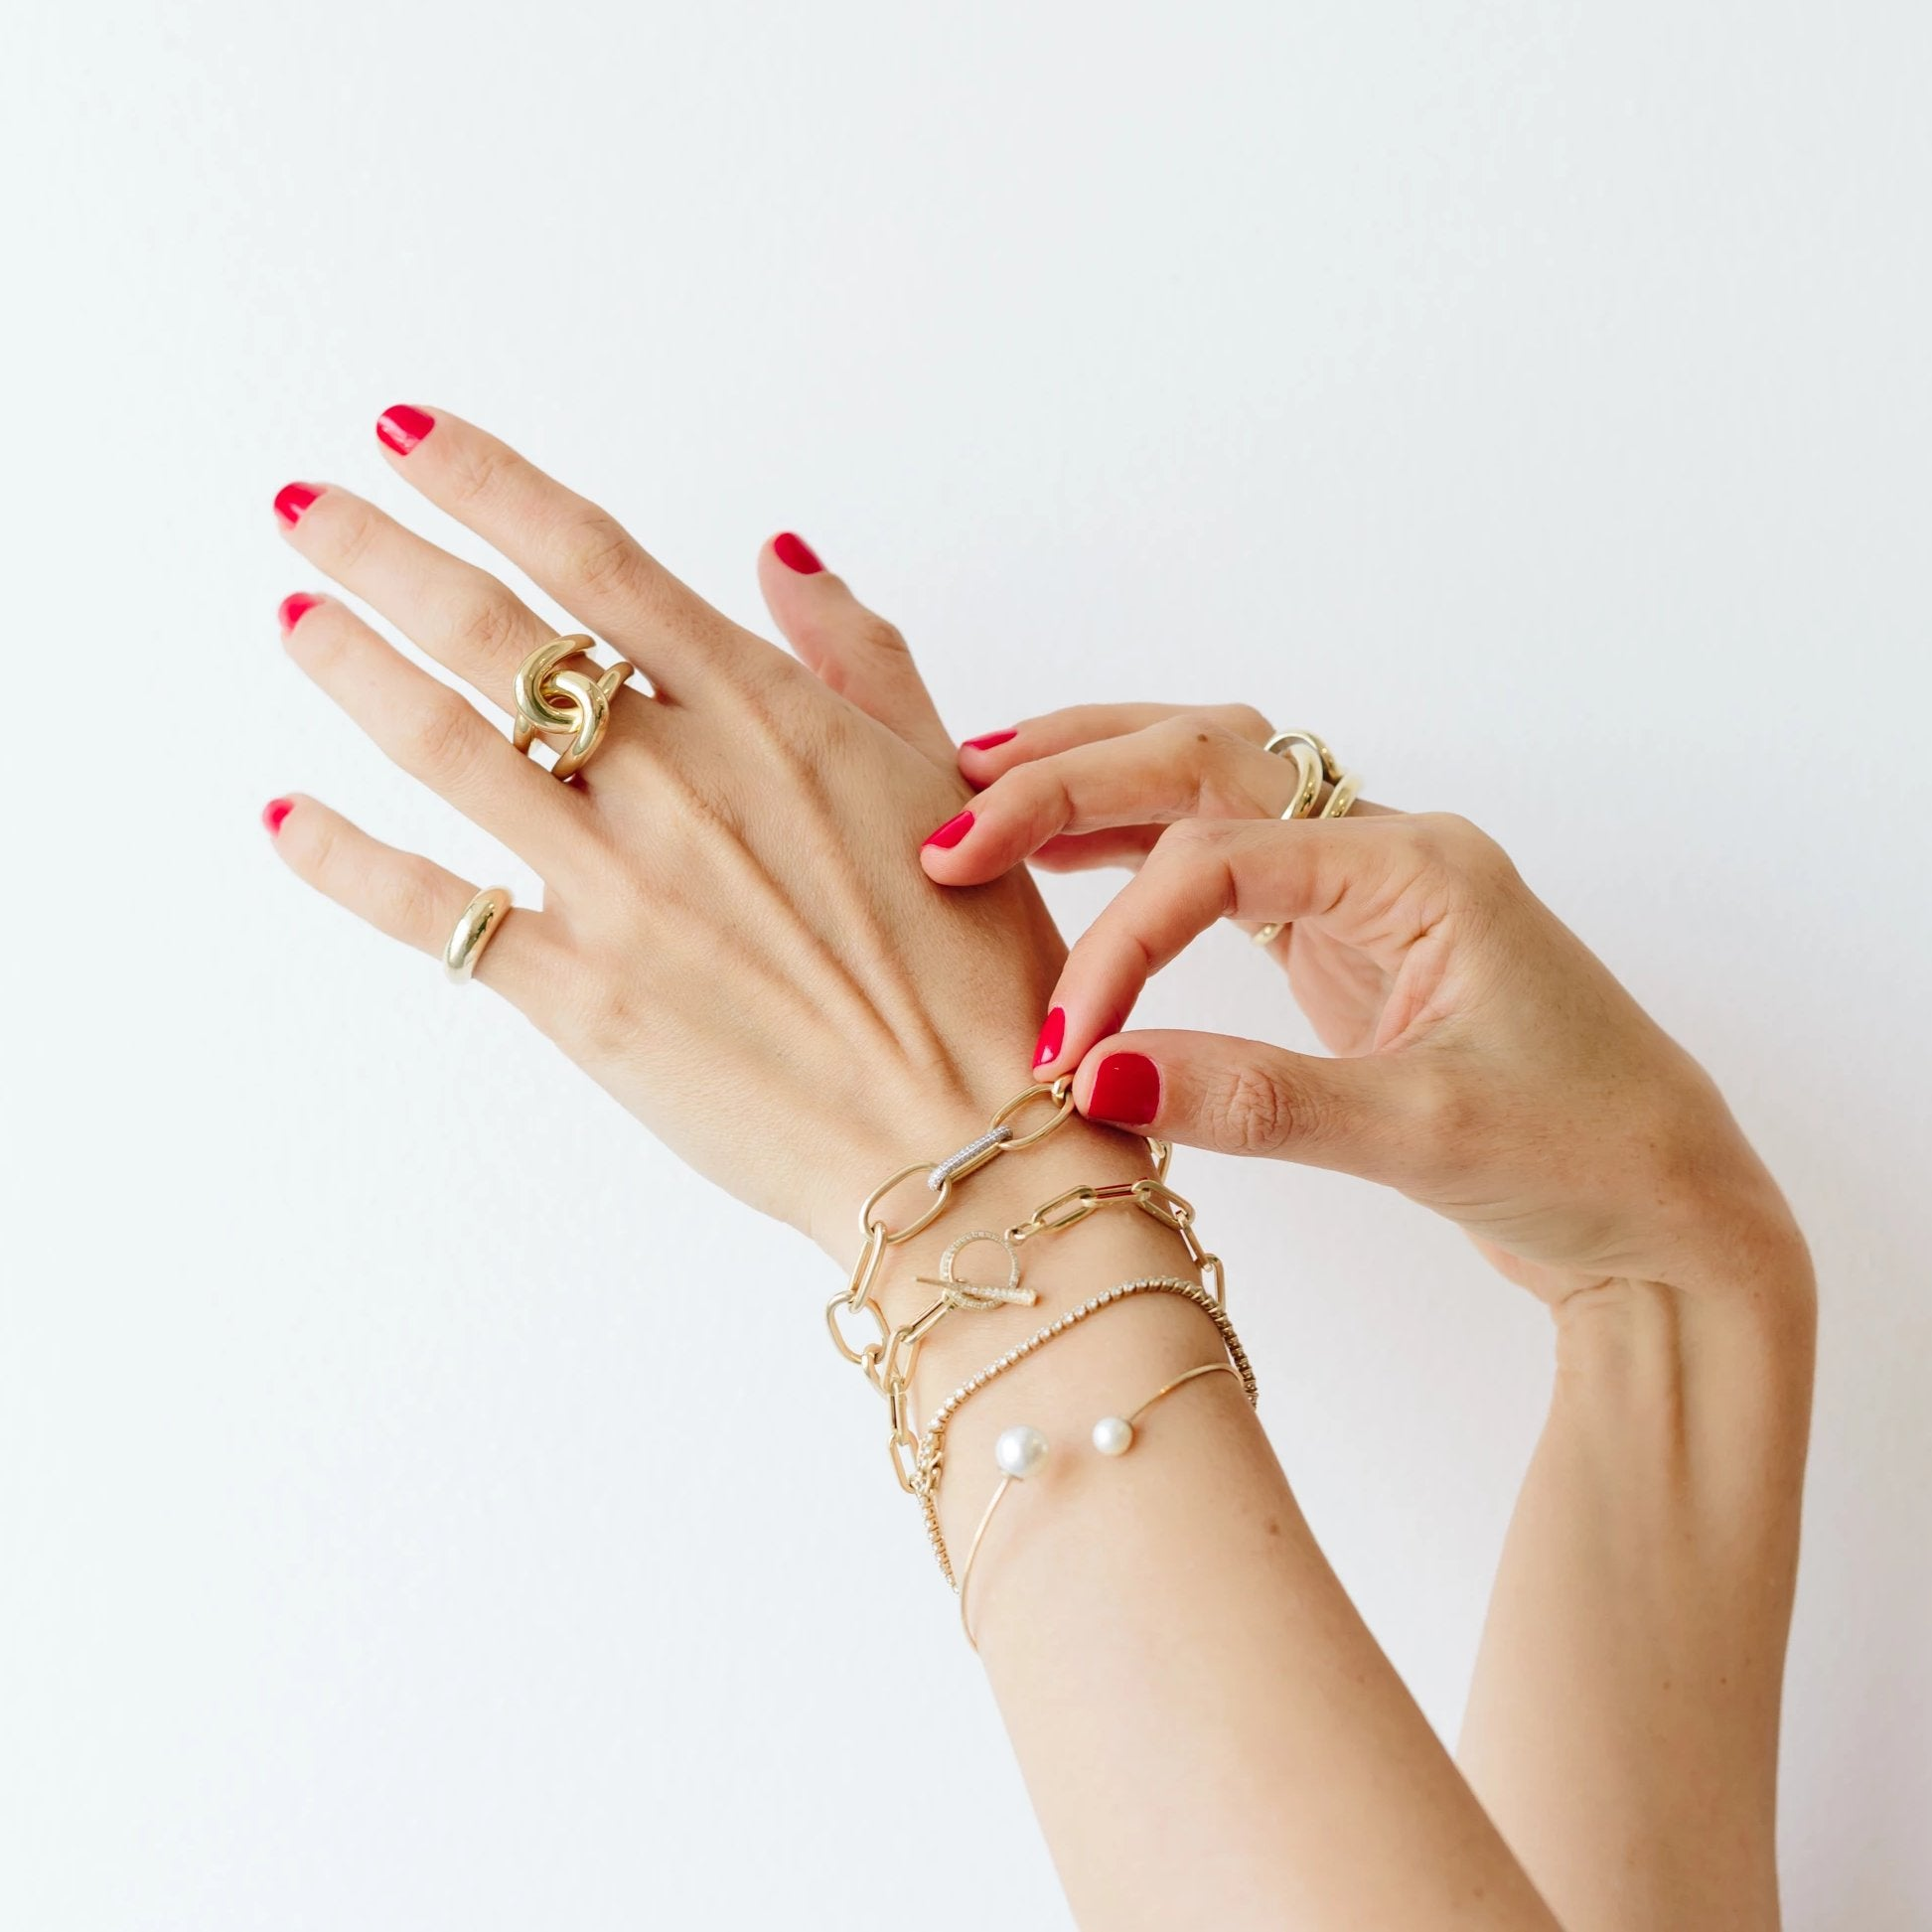 Full Link Ring - Gabriela Artigas